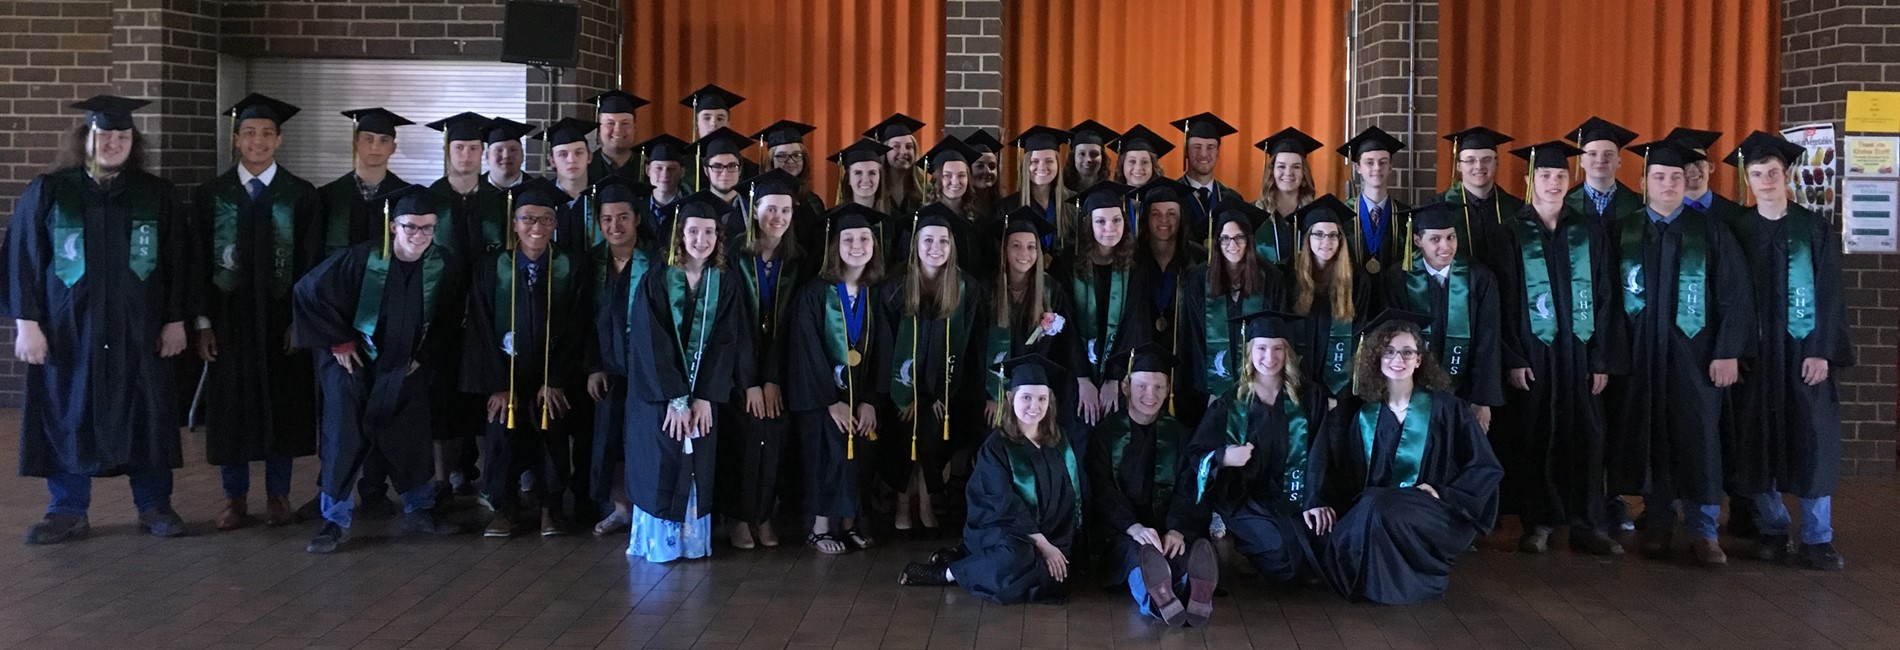 Chequamegon Class of 2019